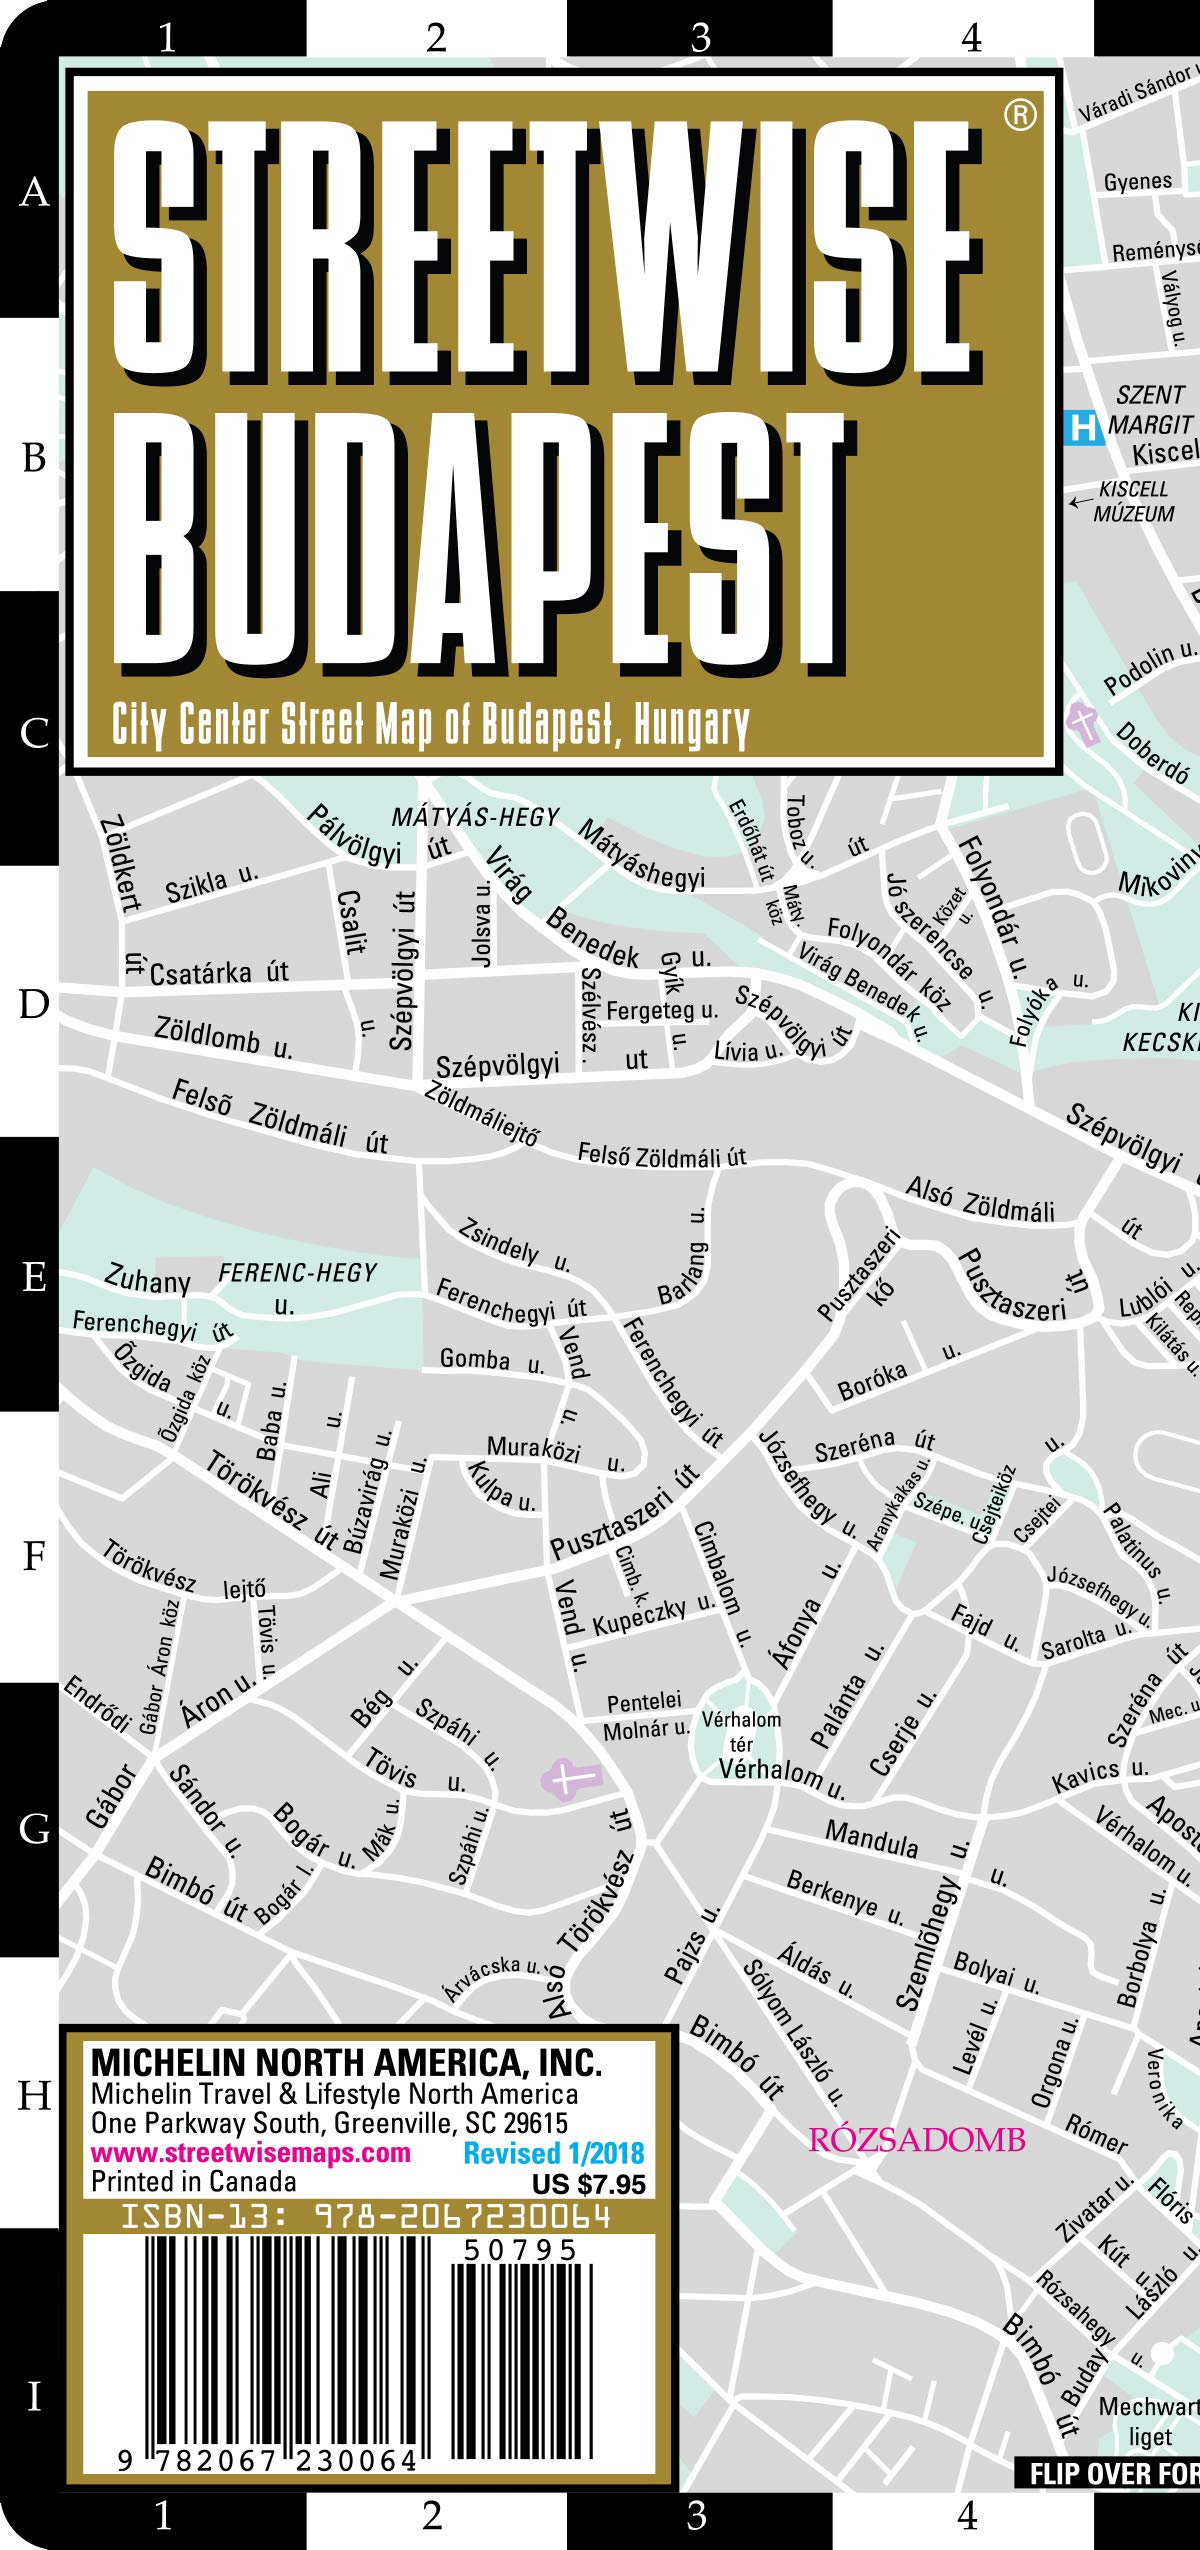 Streetwise Budapest Map - Laminated City Center Street Map of Budapest, Hungary (Michelin Streetwise Maps) Map – Folded Map, February 15, 2018 2067230069 Europe - General Maps & Road Atlases Travel / Europe